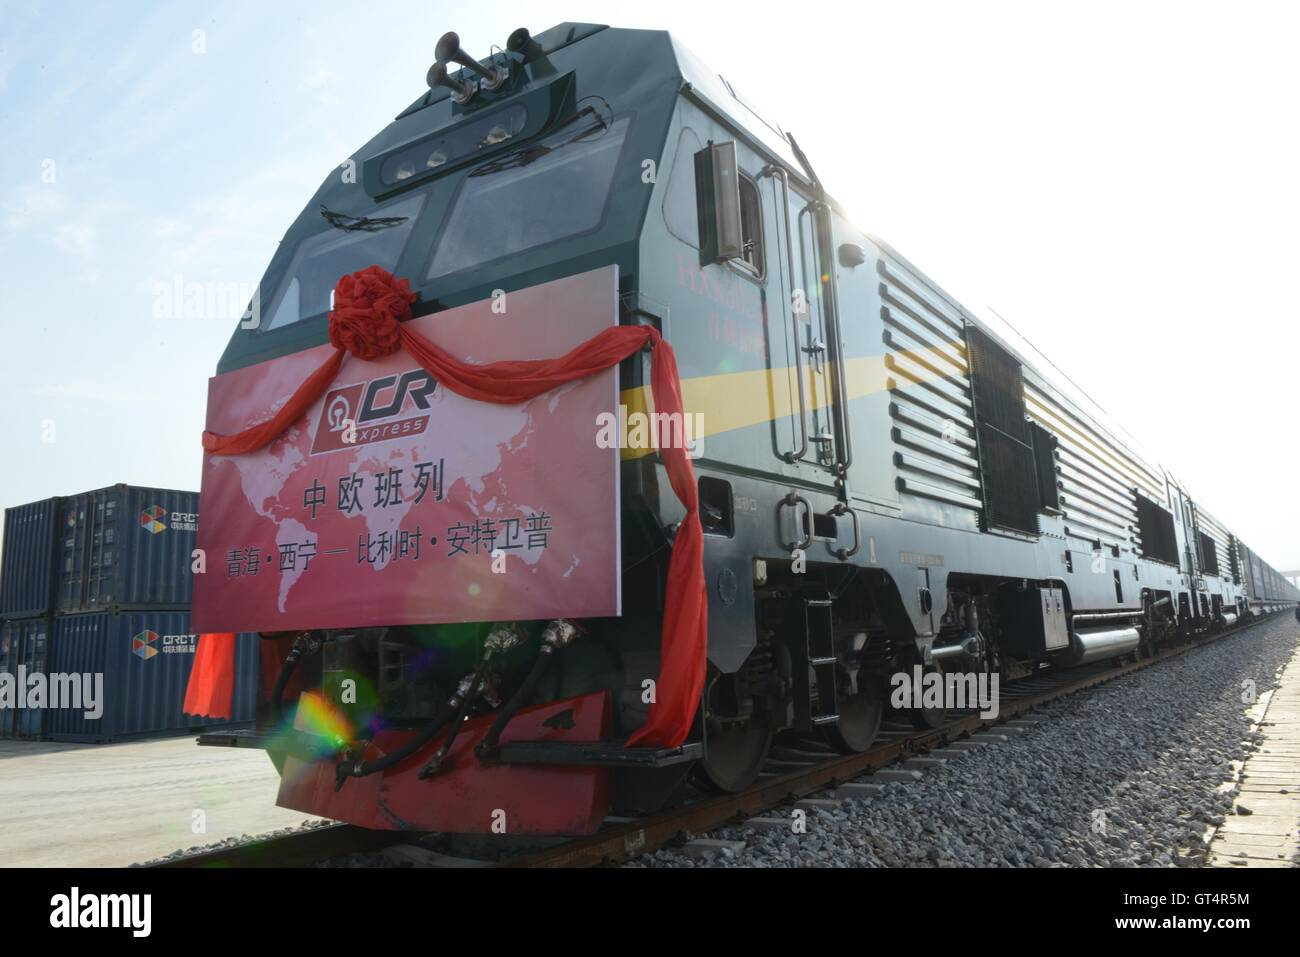 Xining. 8th Sep, 2016. Photo taken on Sept. 8, 2016 shows a CR Express cargo train leaving for Antwerp, Belgium, - Stock Image